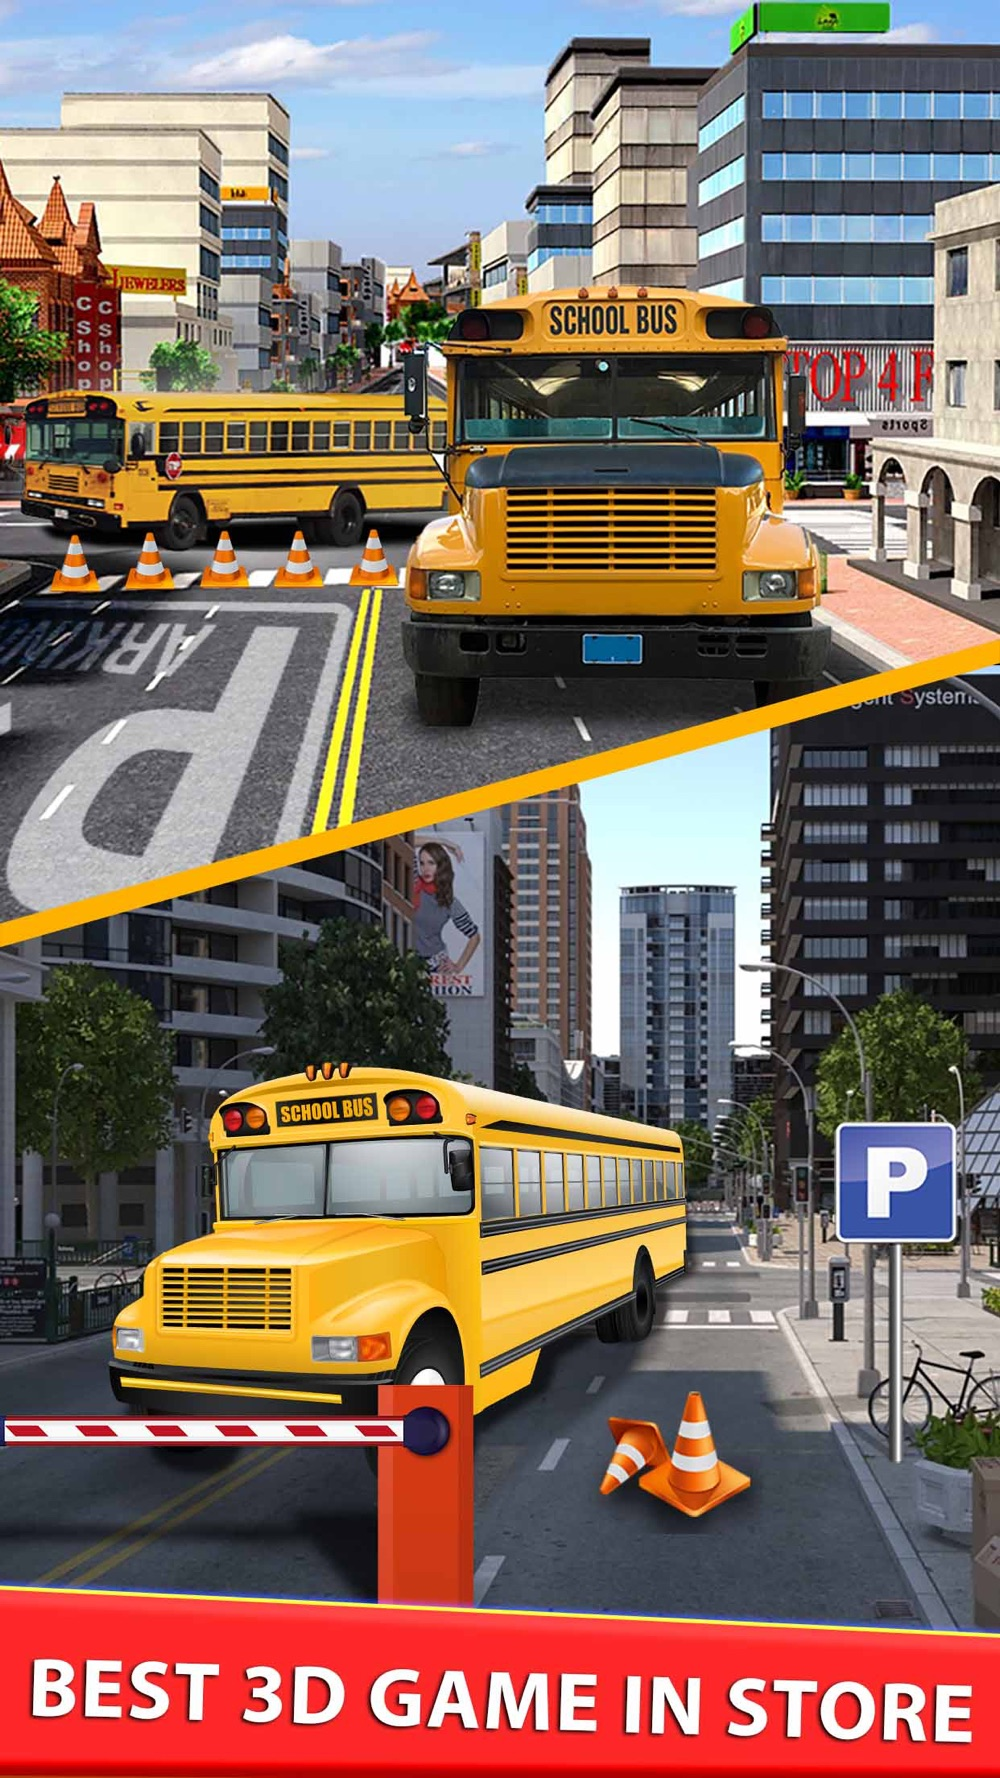 High School Bus Parking & Driving Test - 2K16 Extreme simulator 3d Edition hack tool